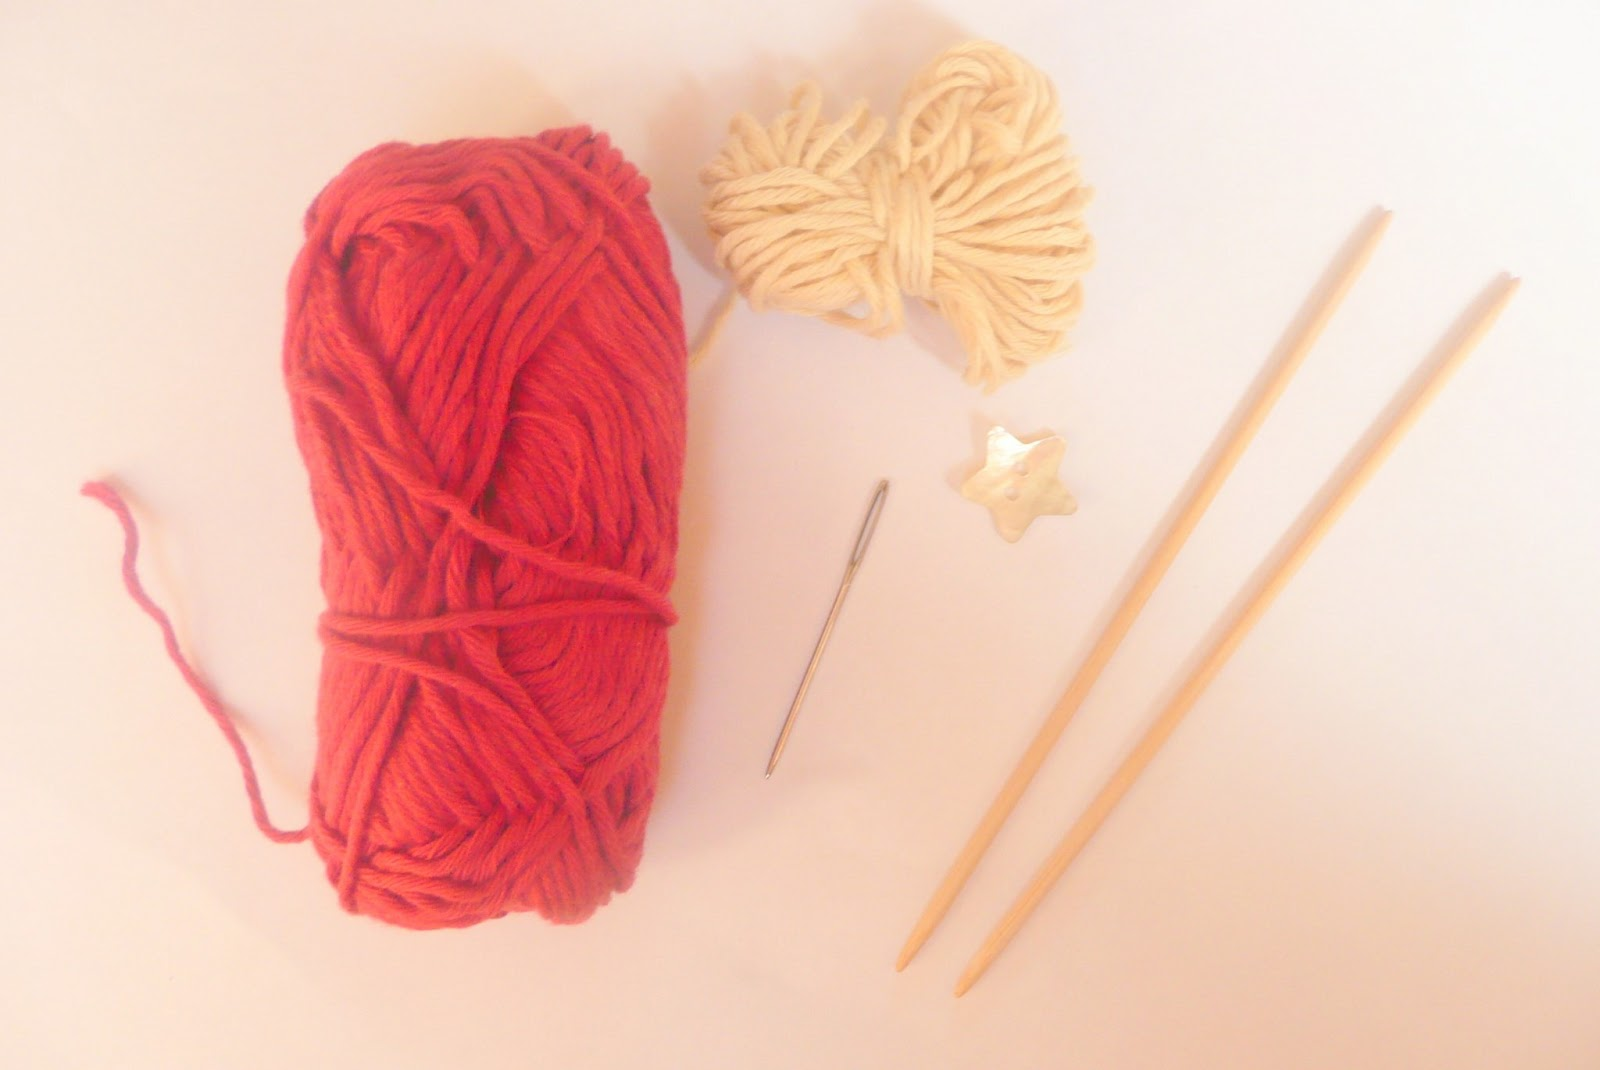 Abbreviation Kfb In Knitting : Ceradka crafts tutorial how to knit a picot flower